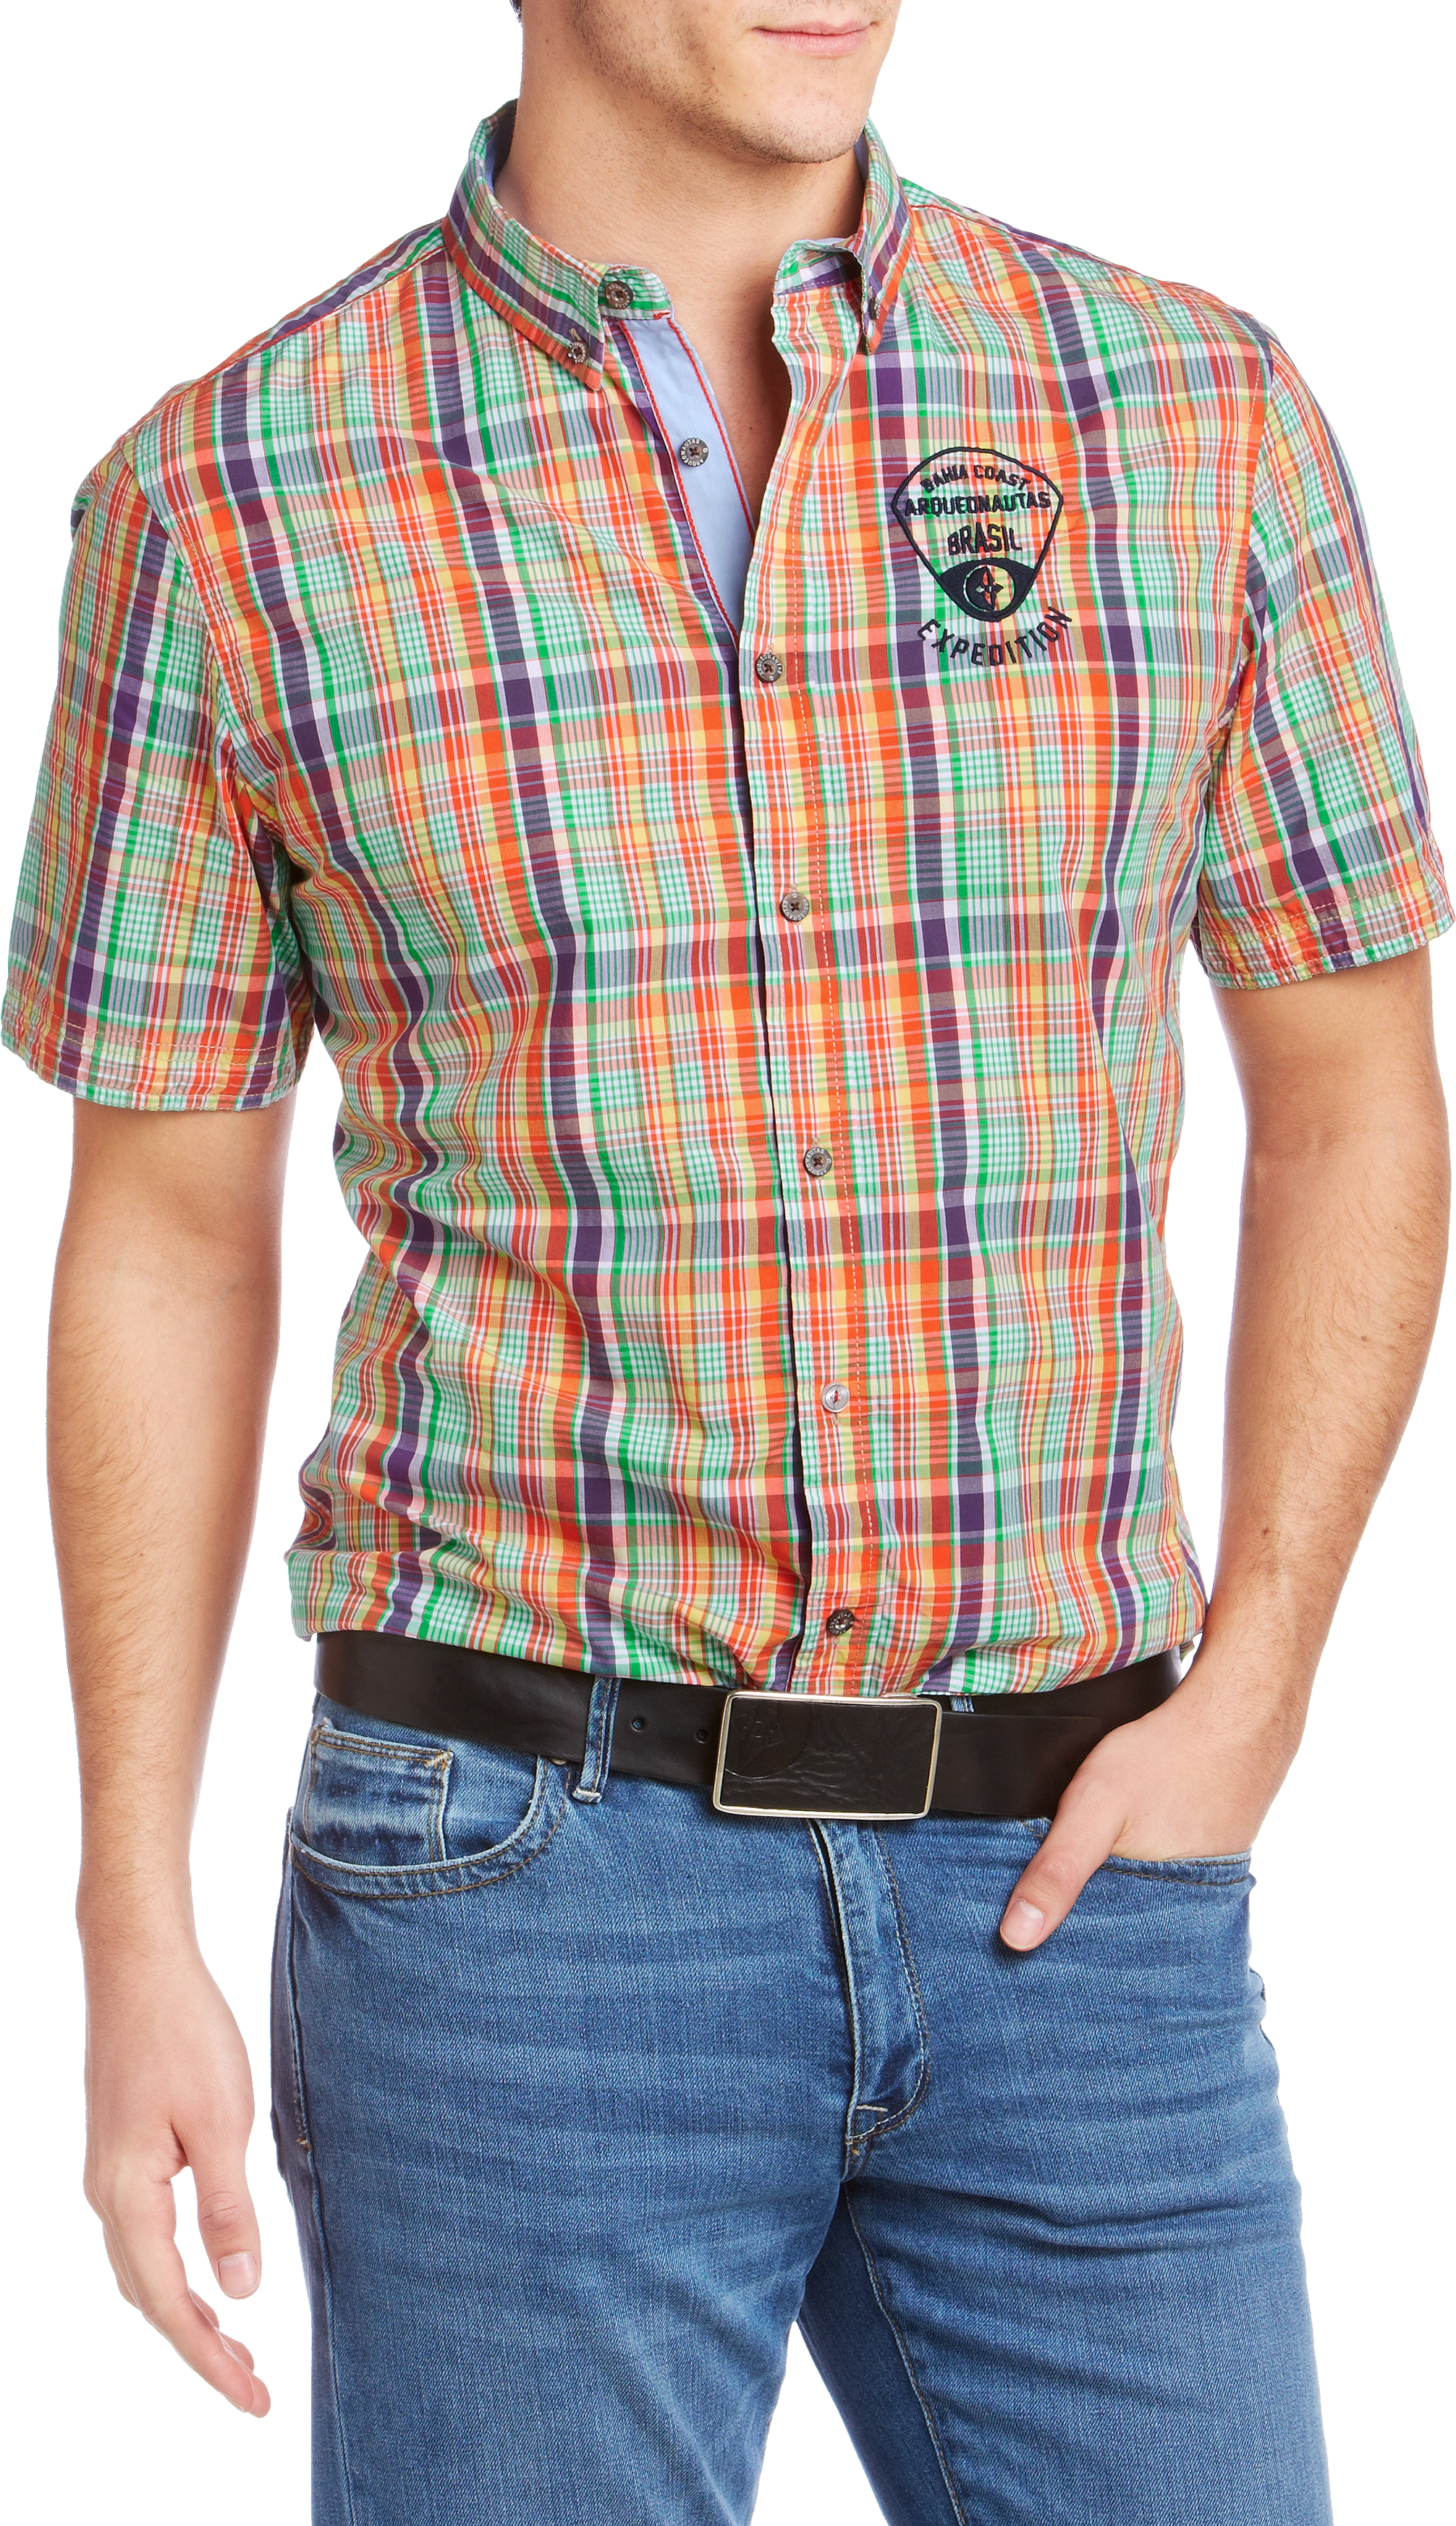 Mens clothes png. Shirt images free download